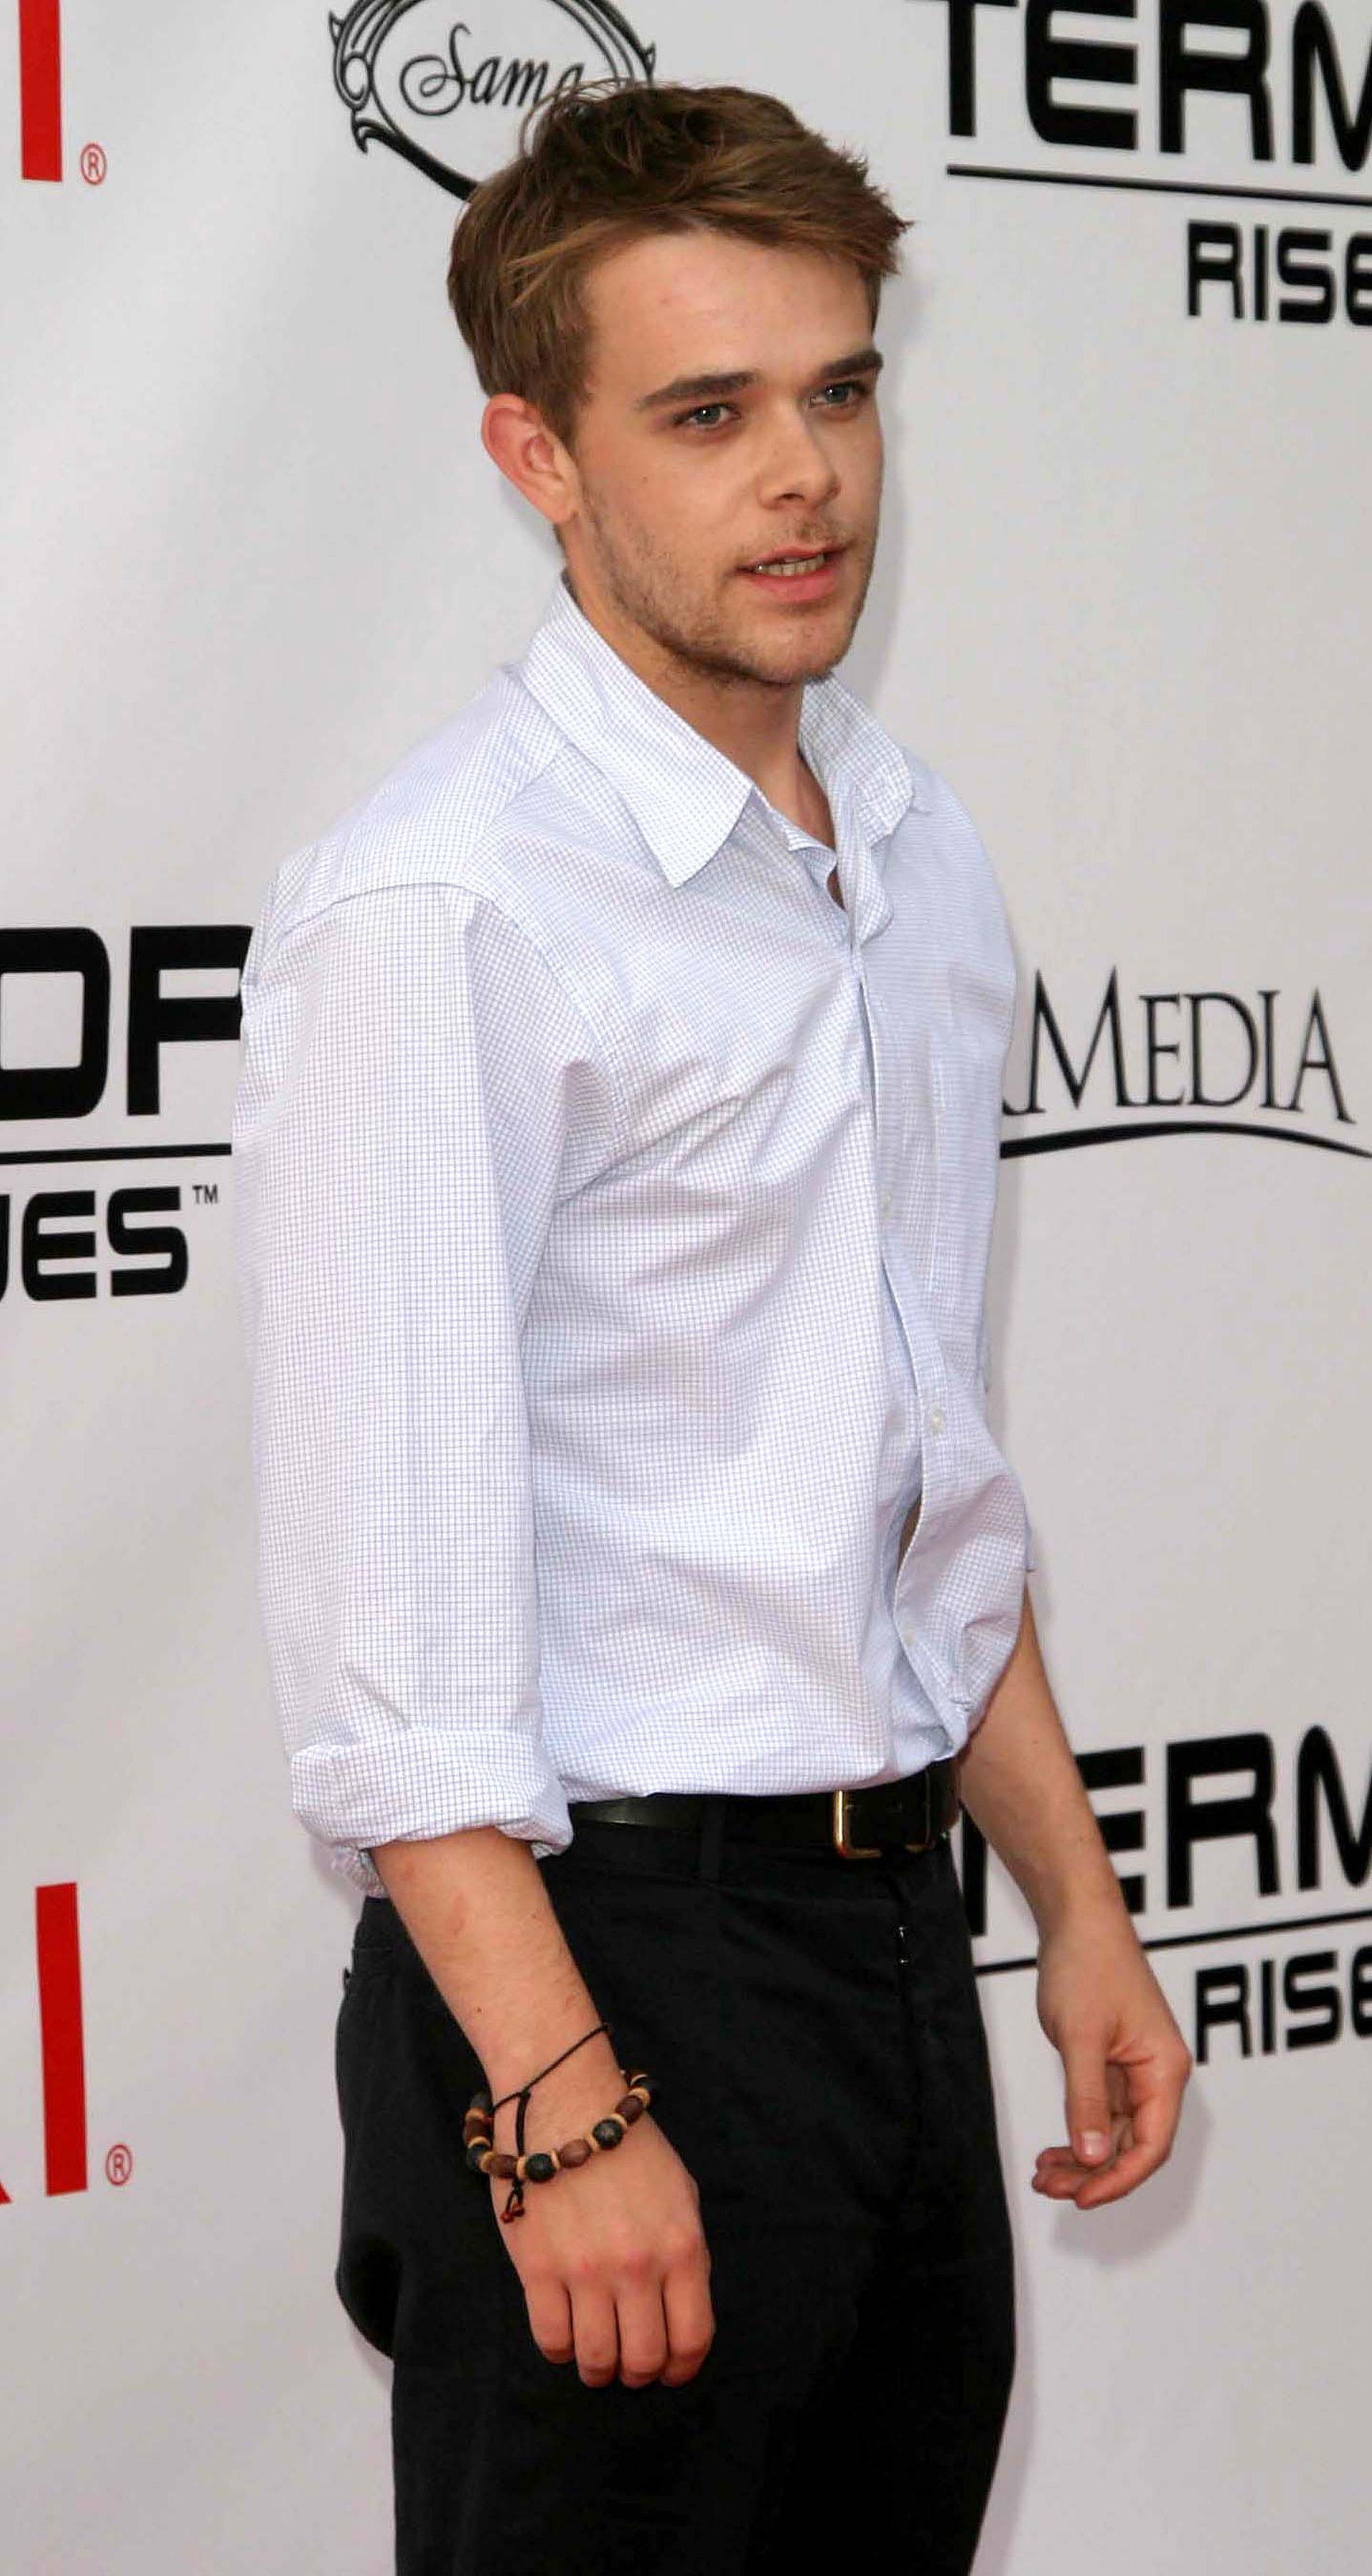 Nick Stahl at the Terminator 3: Rise of the Machines - Game Launch party at the Raleigh Studios on May 12, 2012 in Los Angeles, California | Photo: Shutterstock